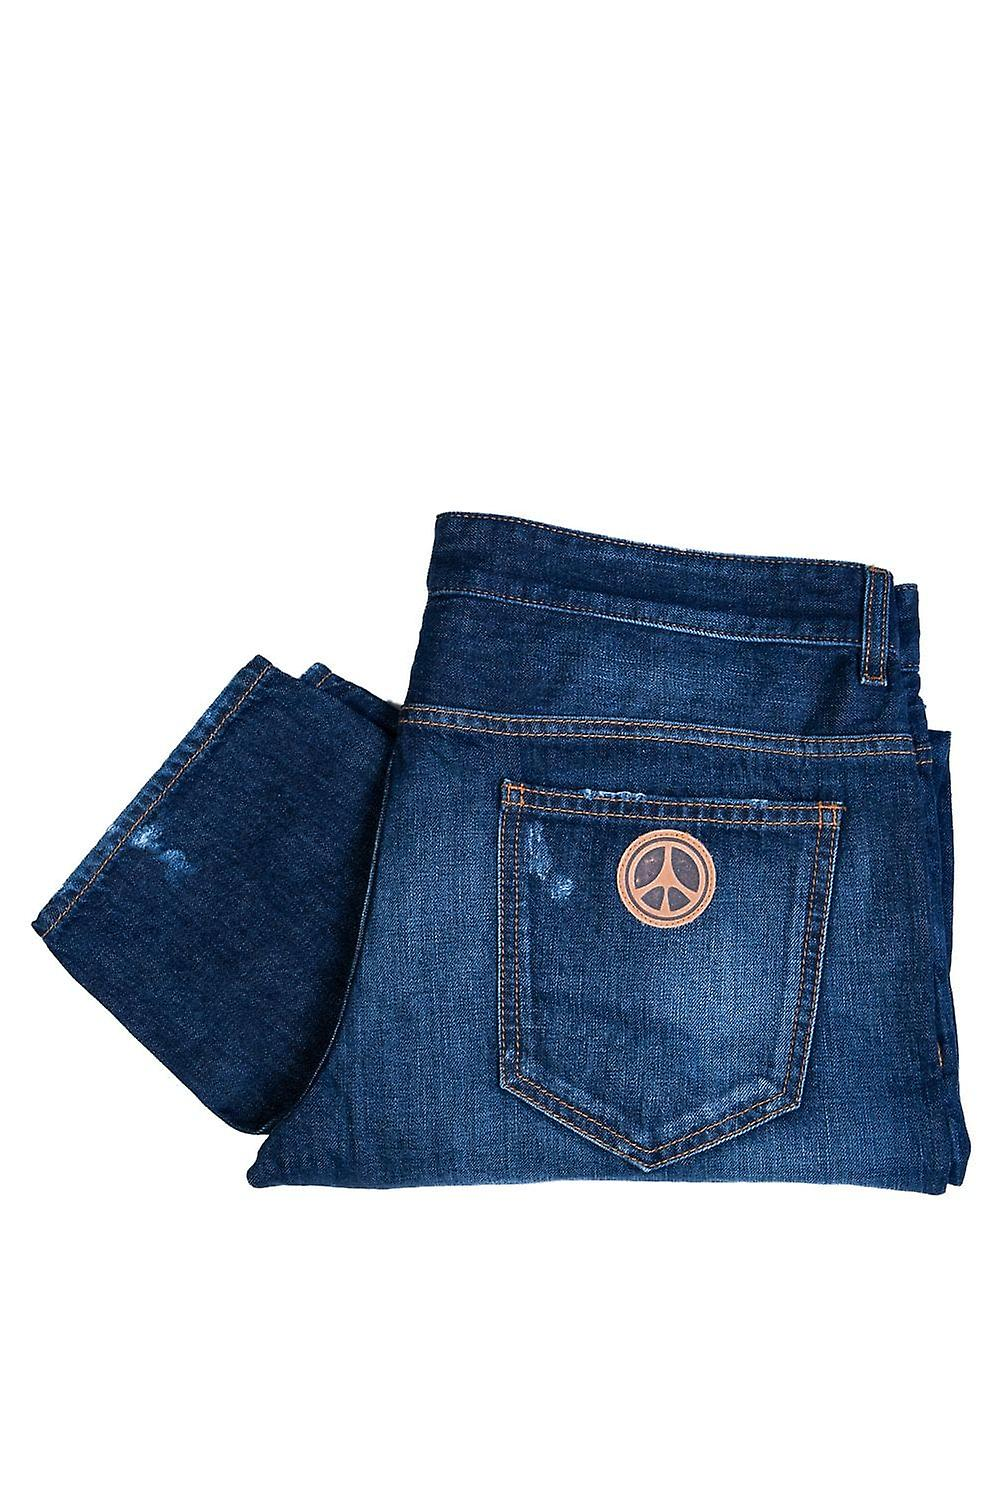 Moschino Regular Jeans MQ421 8D T8901